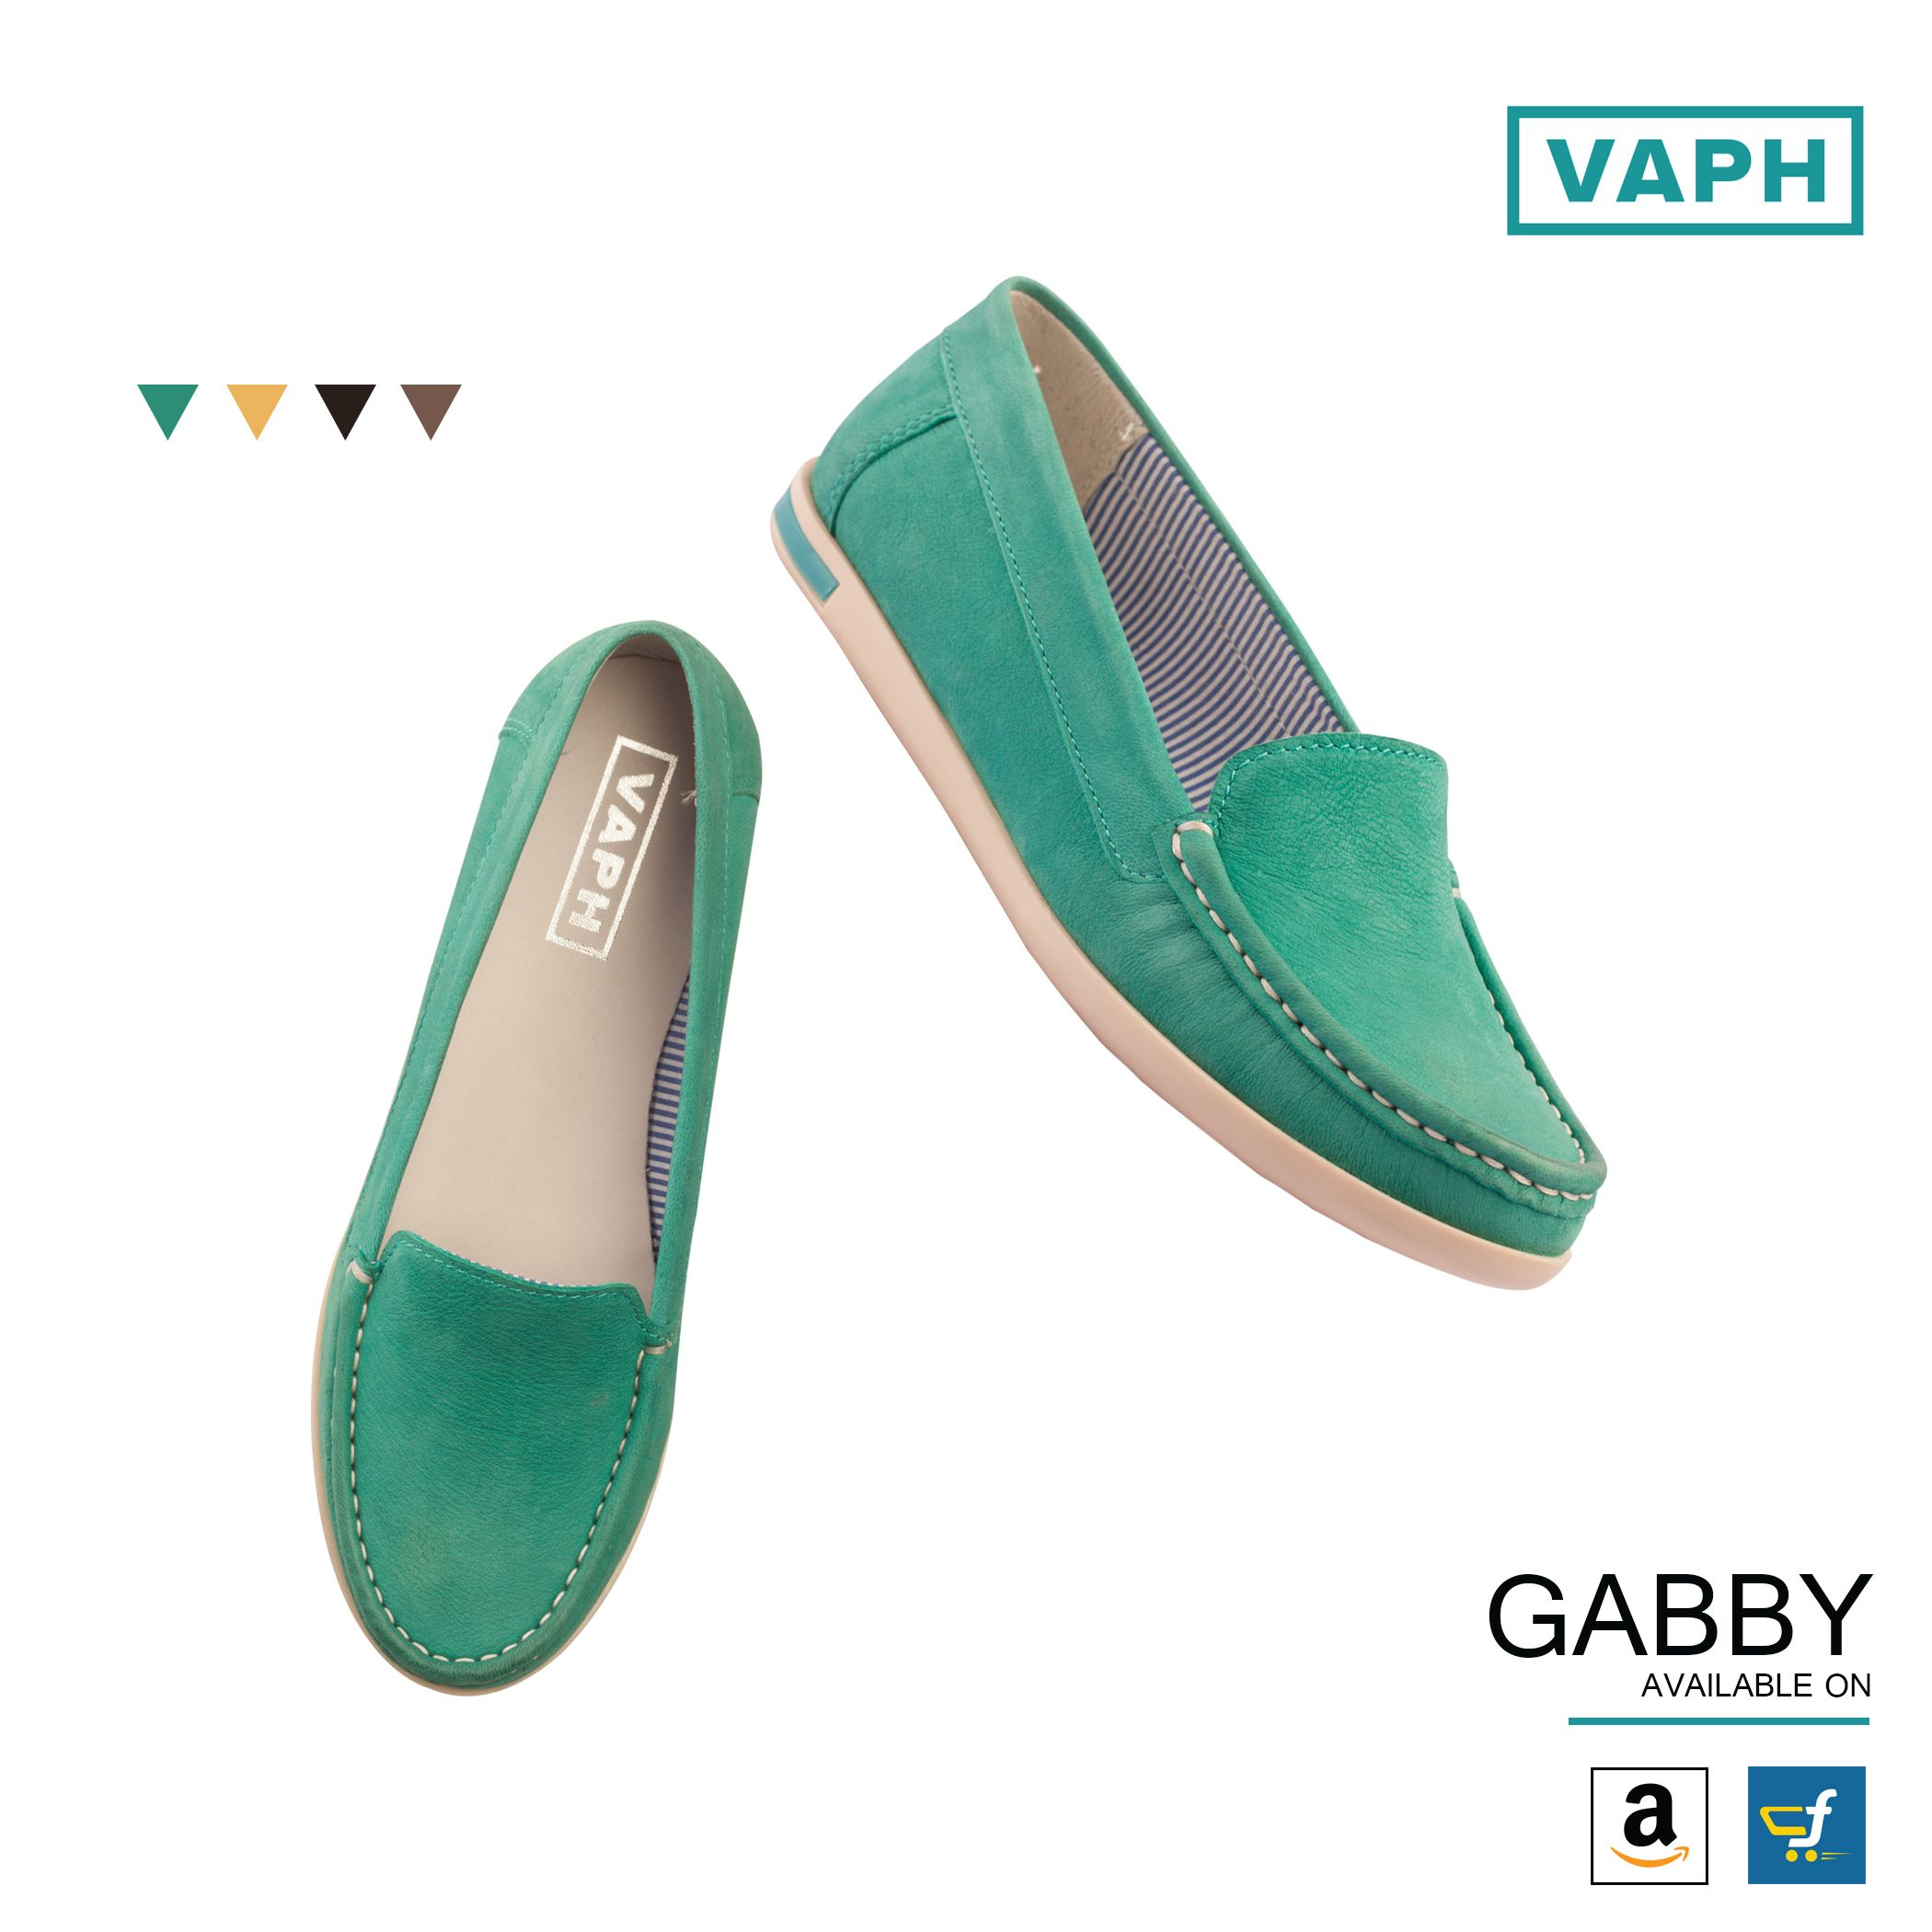 Pure Leather, Classic Footwear, Comfortable walking. Buy Gabby on ...